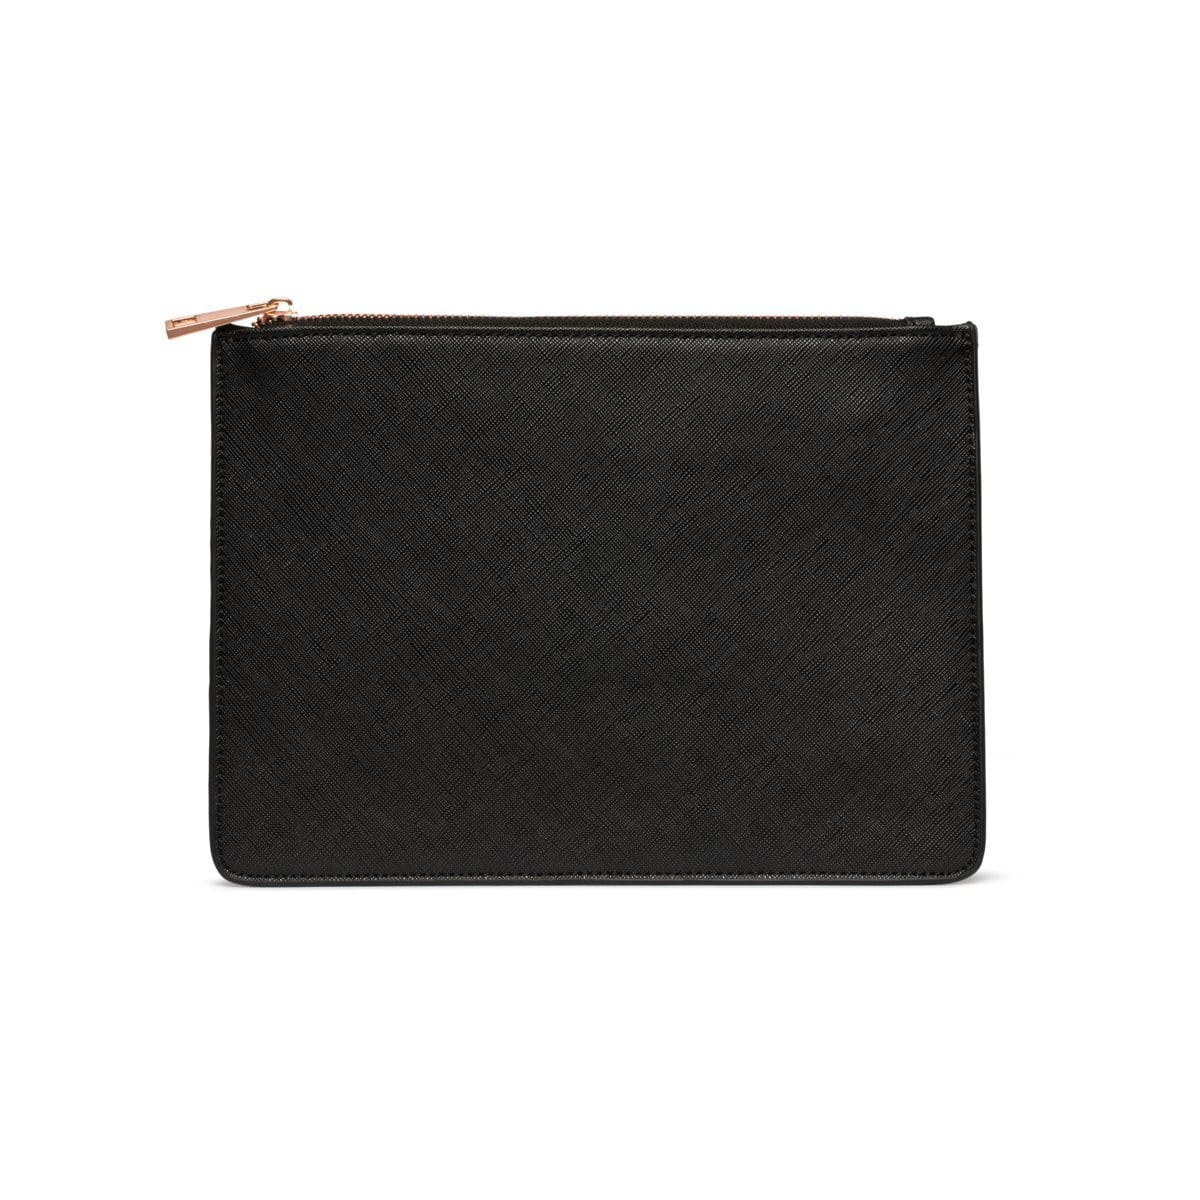 Jet Black Sienna Pouch (PERSONALISE ME!)